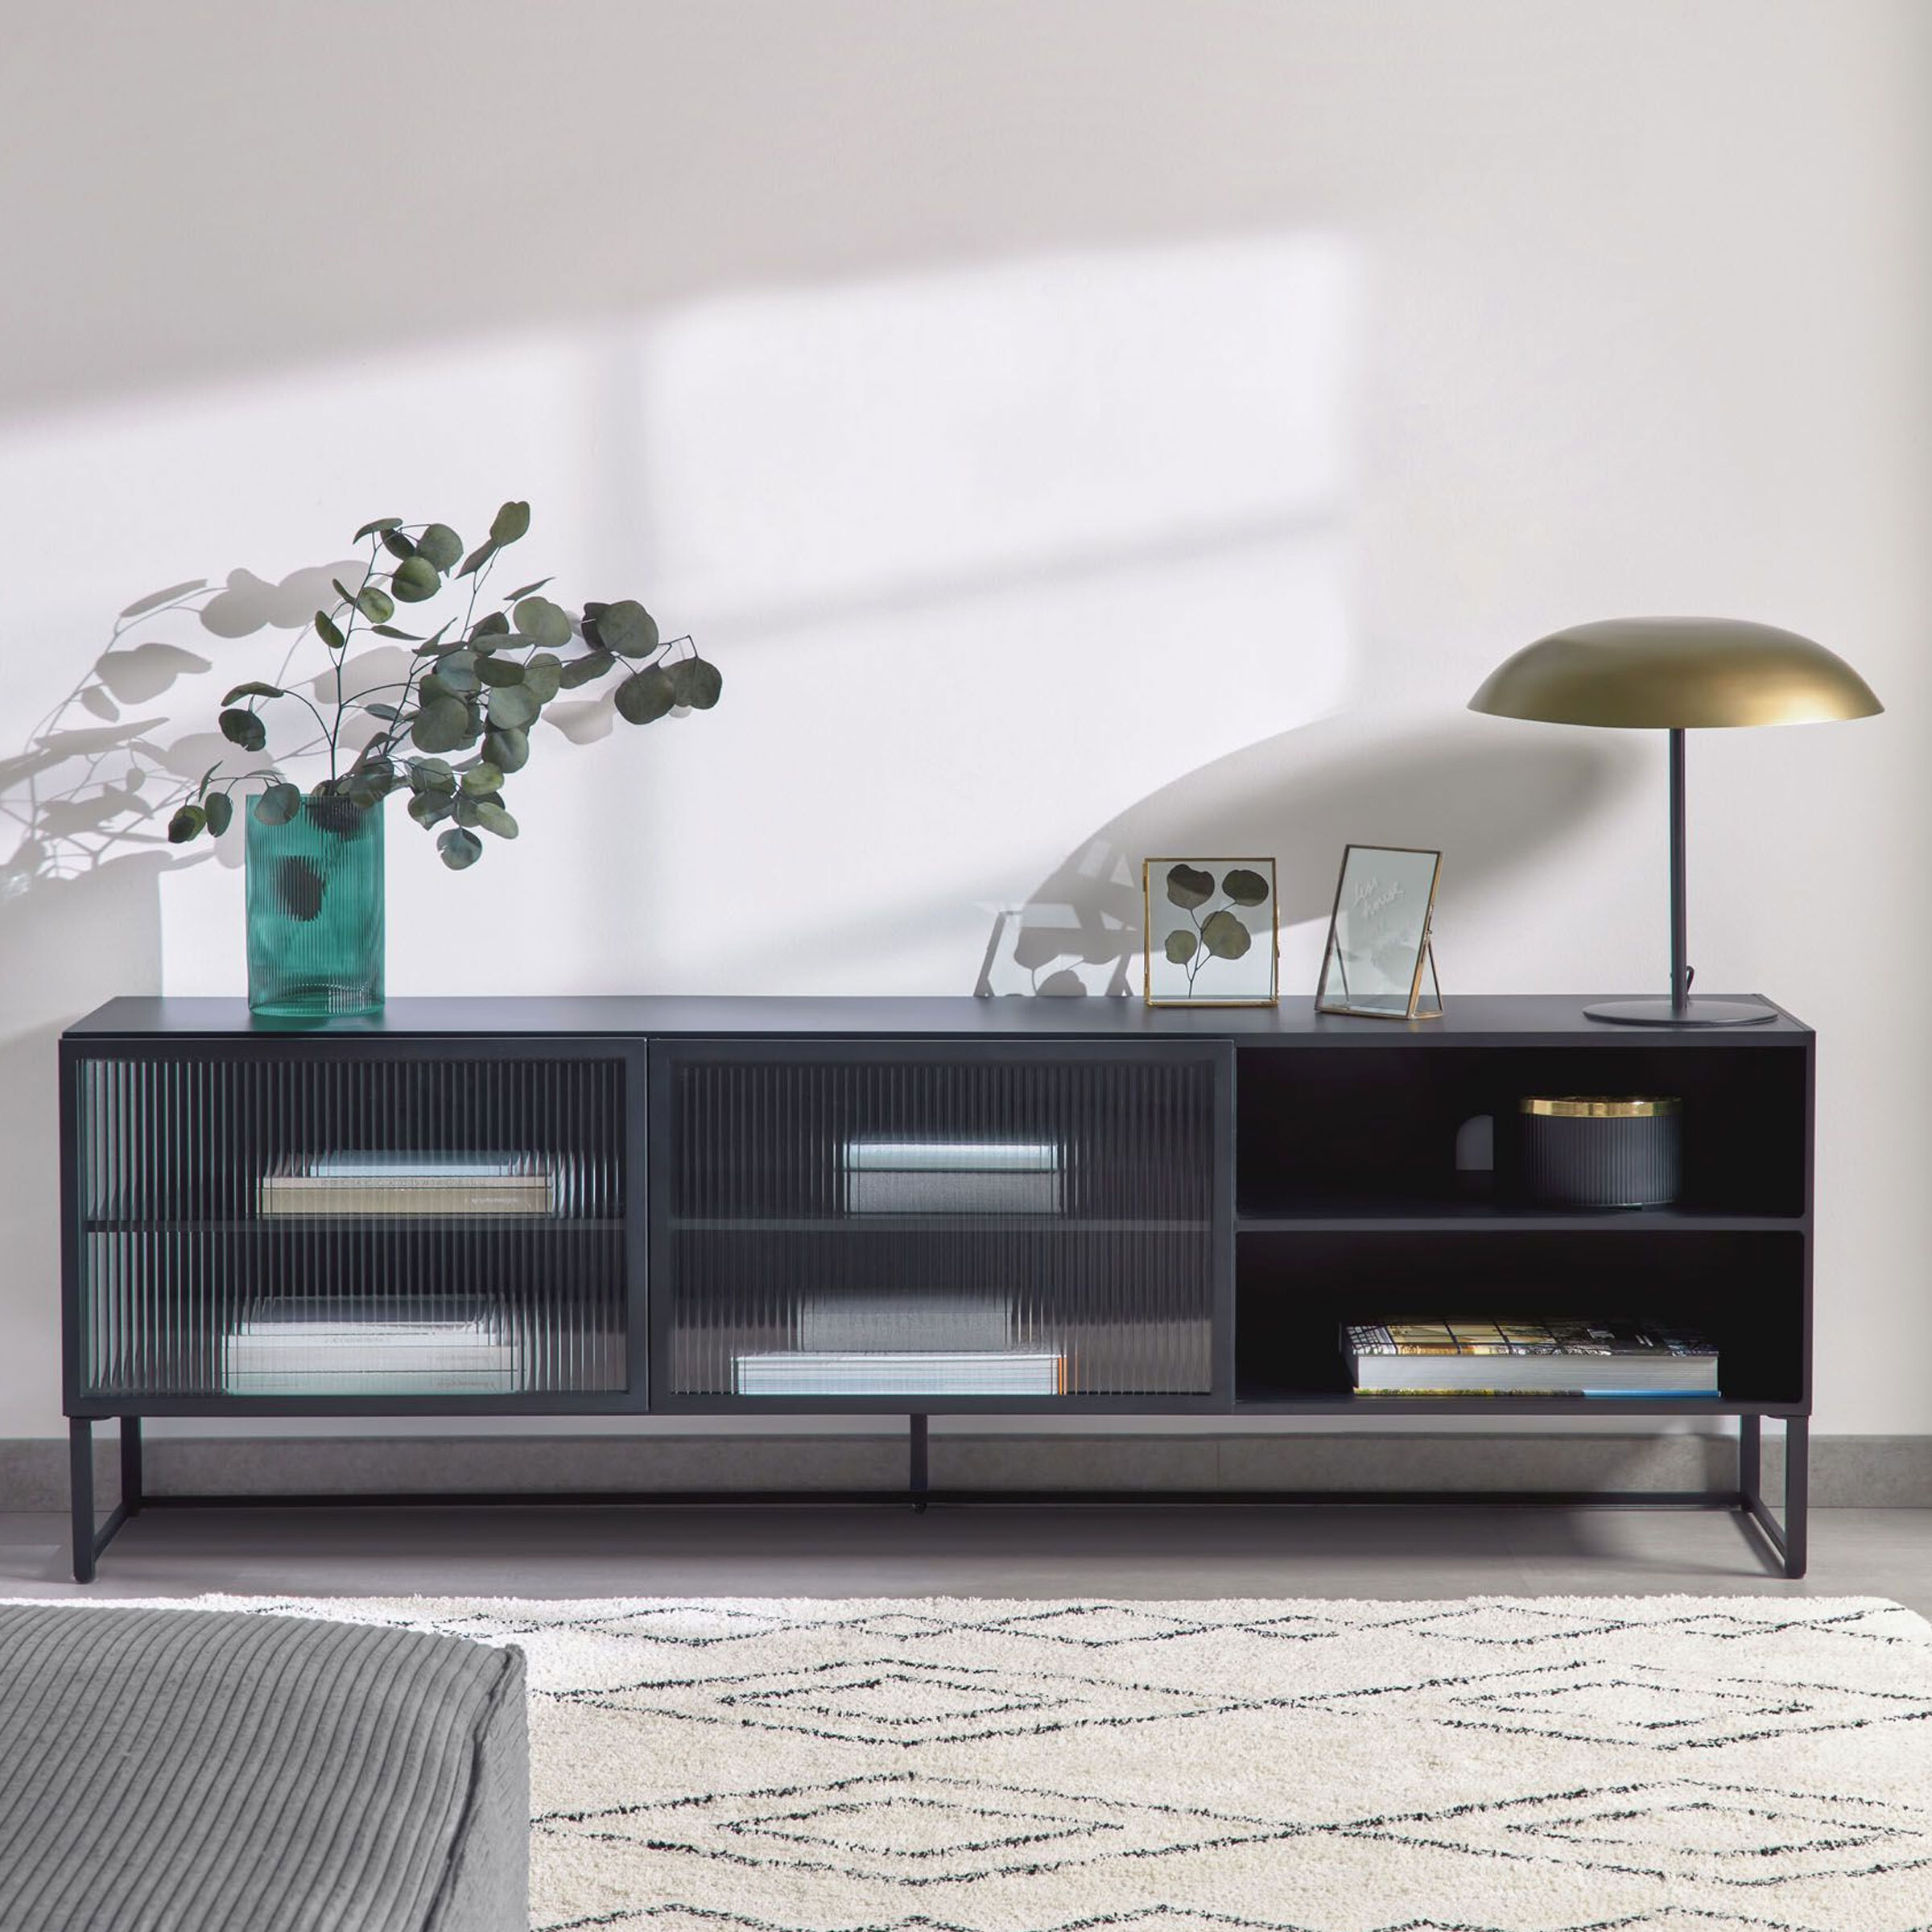 Kave Home TV-meubel 'Trixie' 180cm | Kave Home